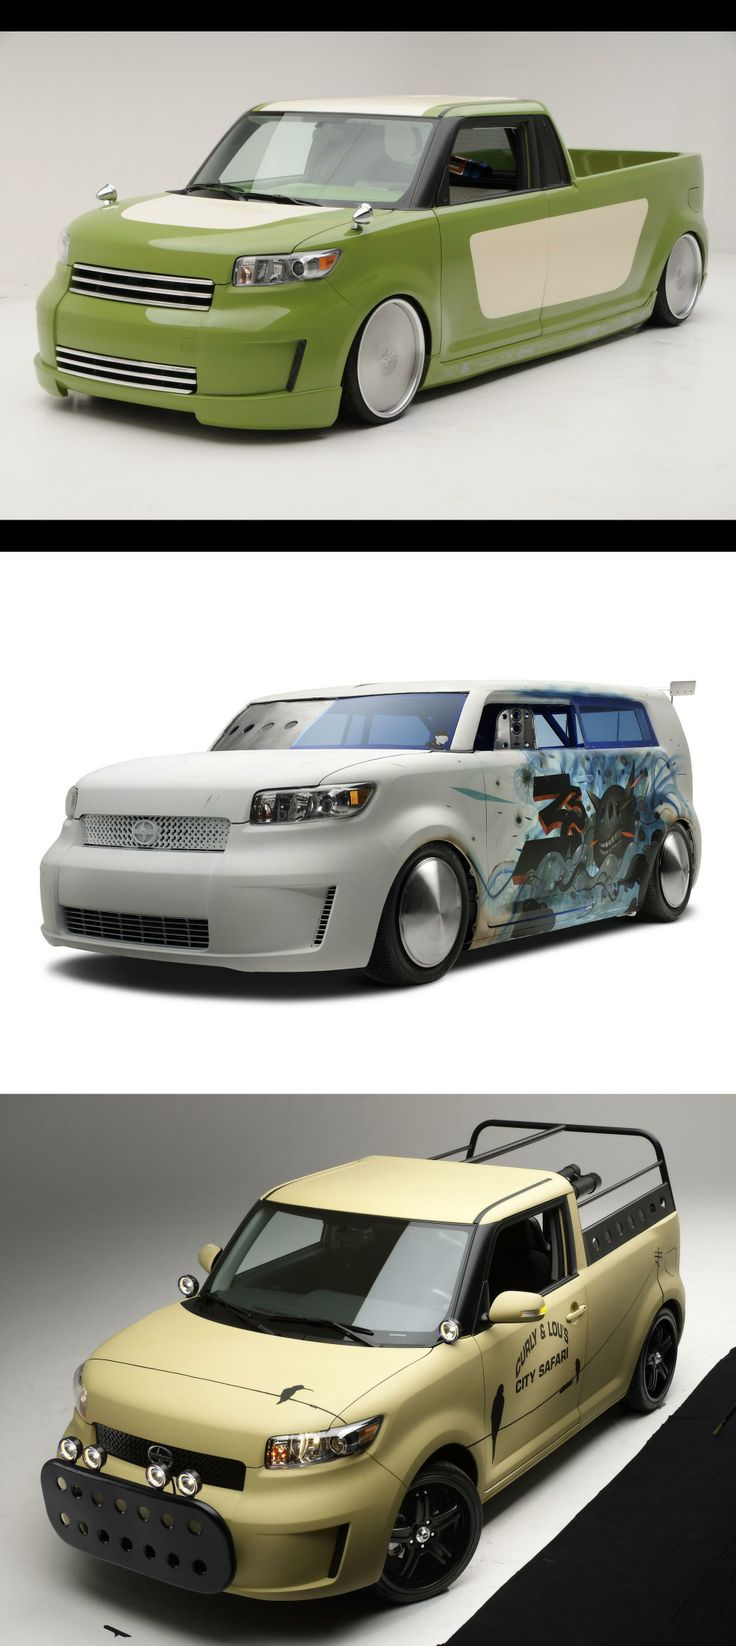 Scion xb by jeff soto 2008 scion xbboxtoyotahtml